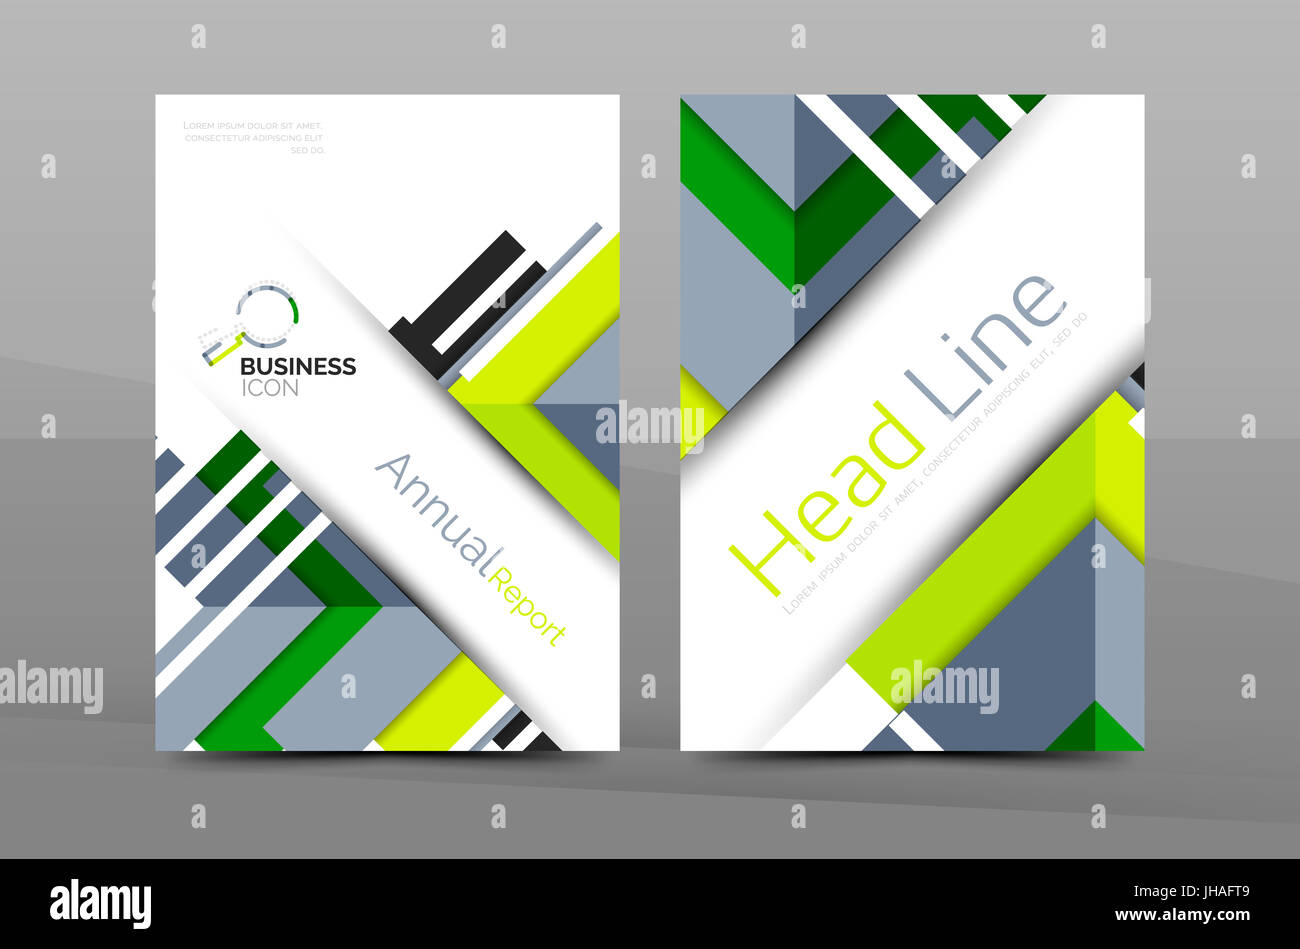 cover design of annual report cover brochure modern abstract background template layout a4 size page